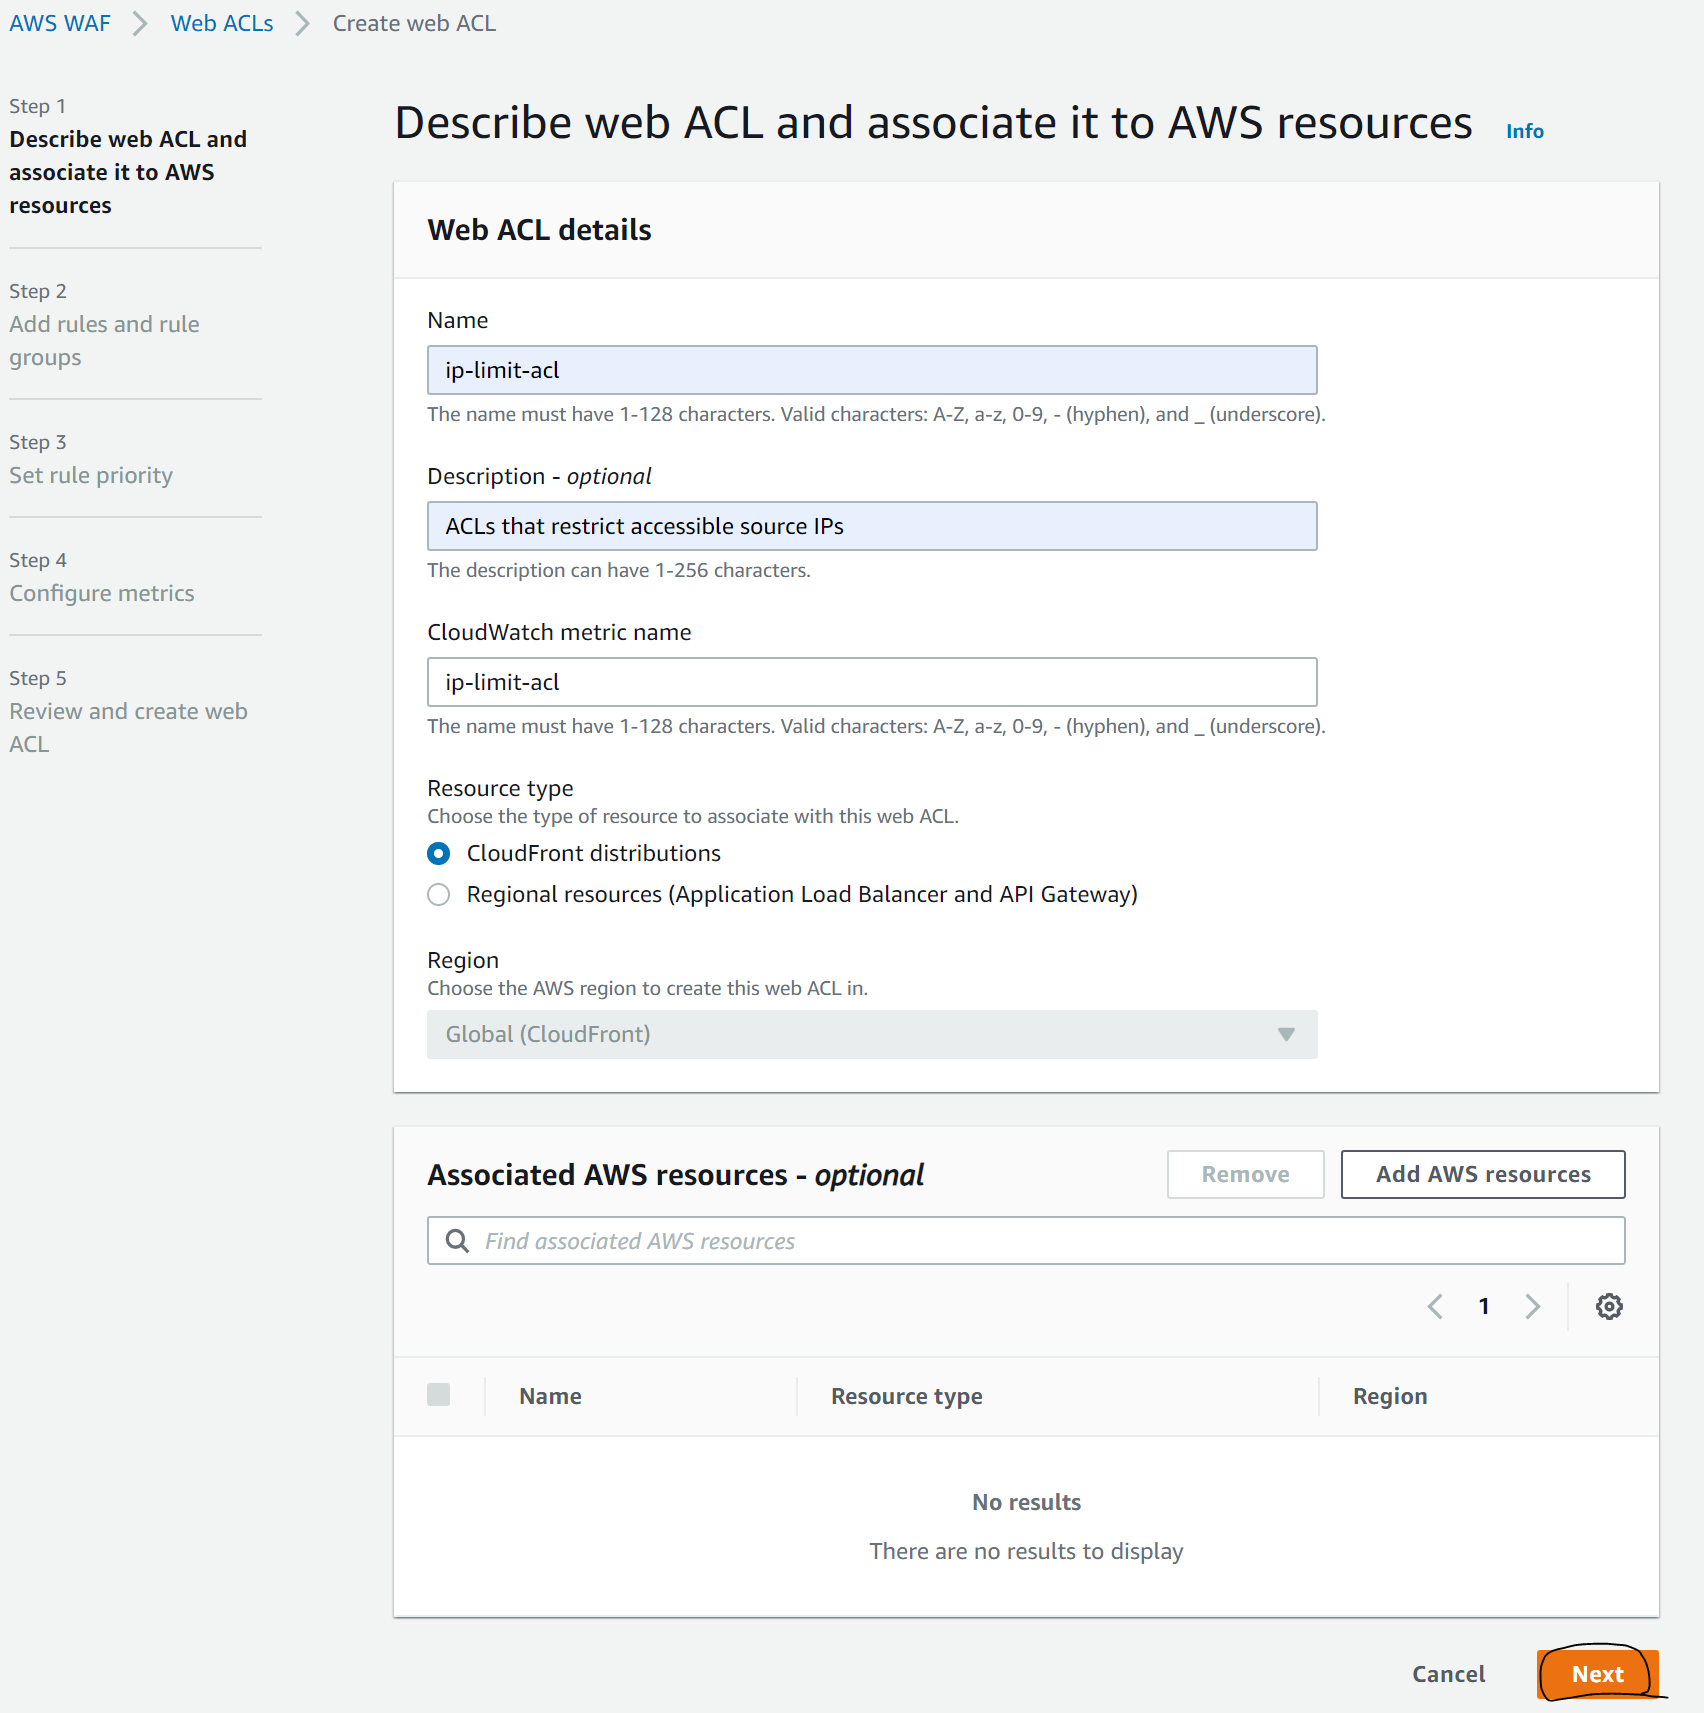 Describe web ACL and associate it to AWS resources